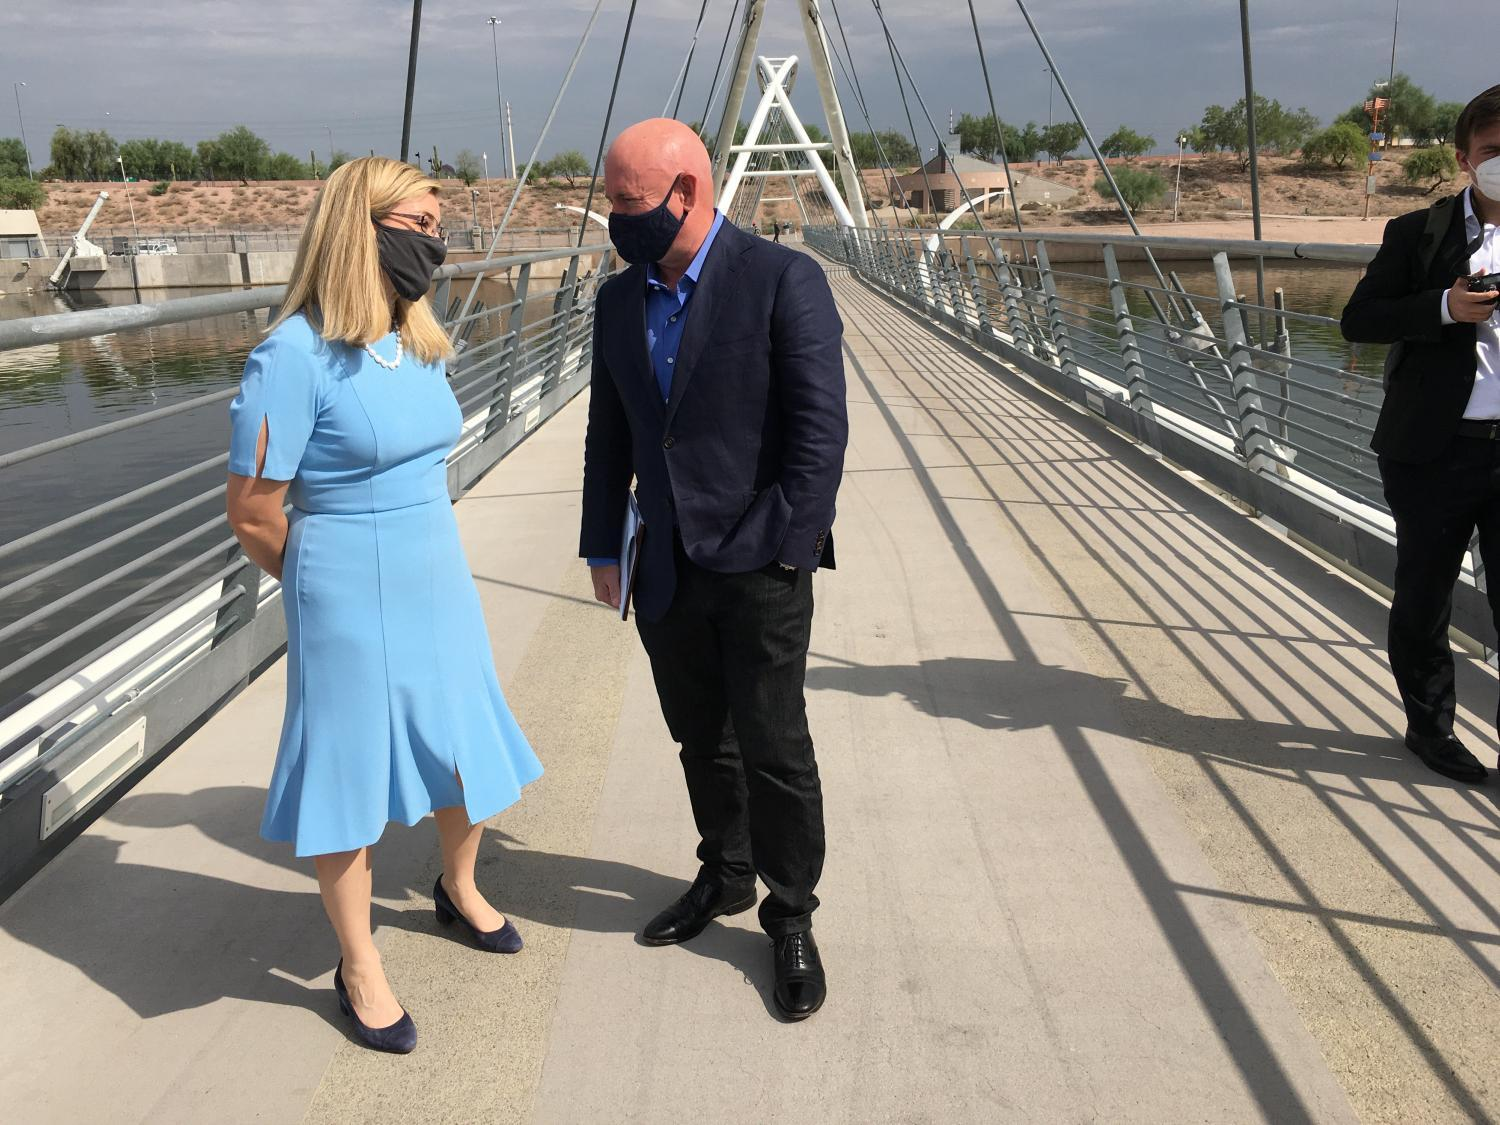 Kate Gallego and Mark Kelly